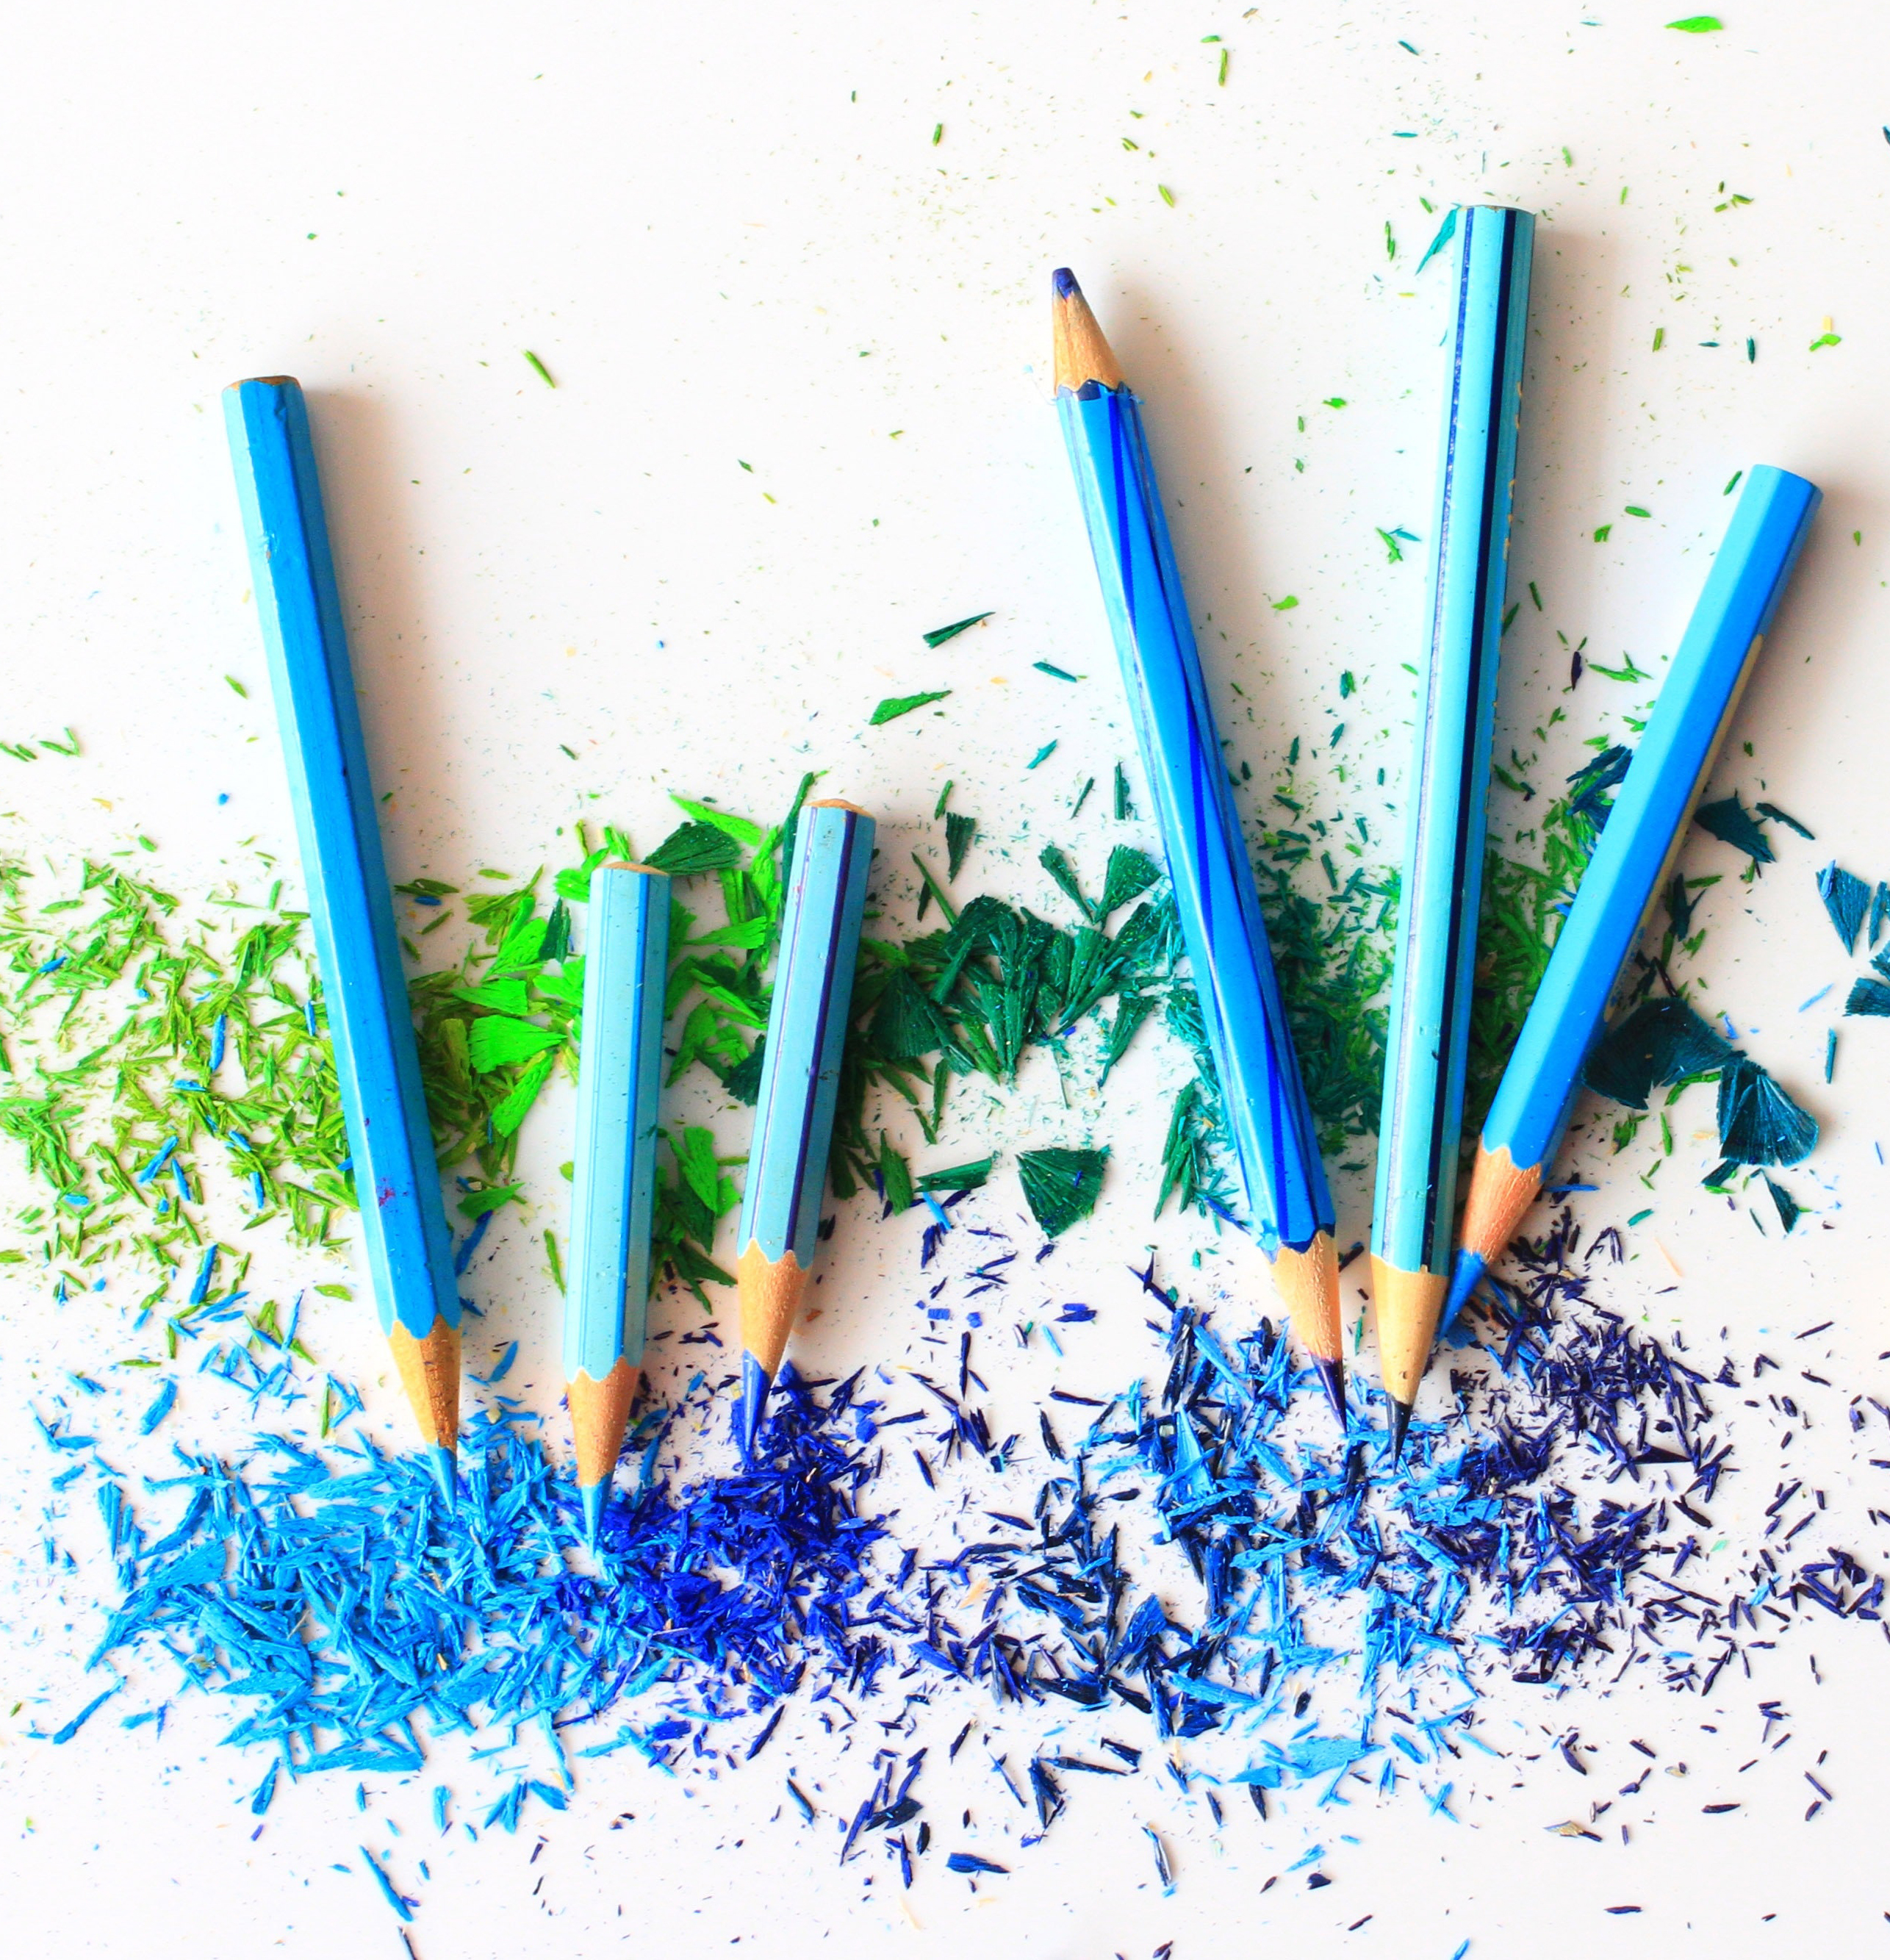 Blue and green pencil shavings and pencils; crafting; drawing